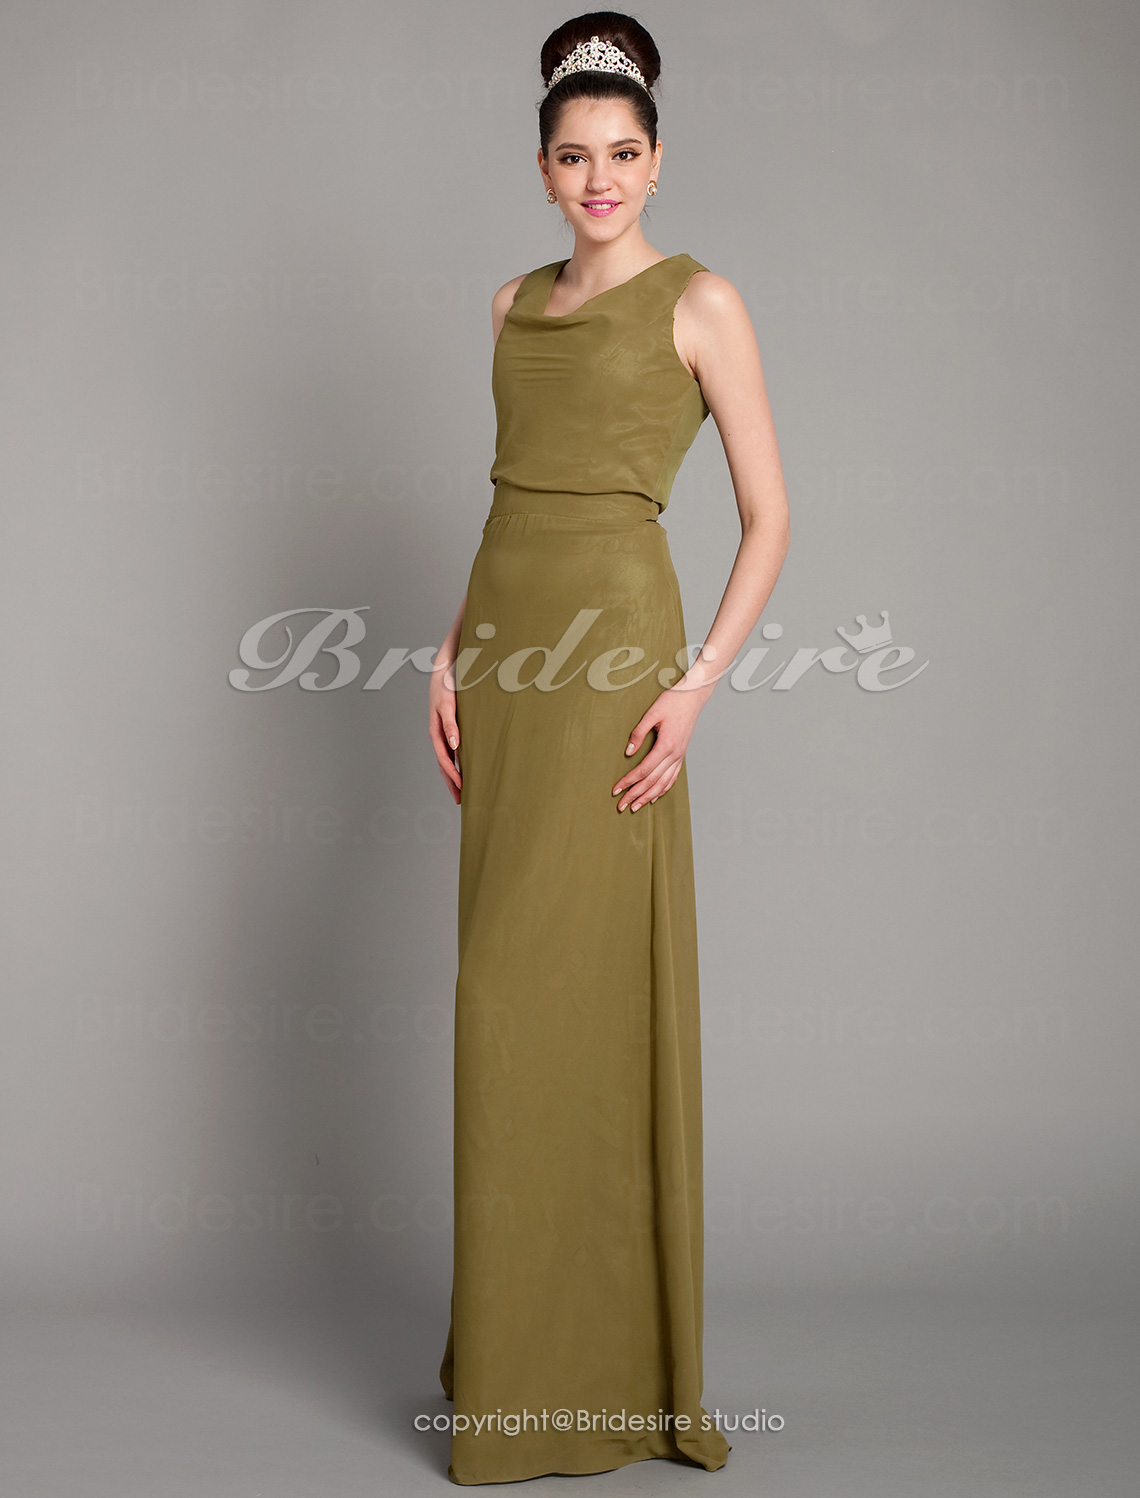 Sheath/ Column Floor-length Chiffon Cowl Bridesmaid Dress